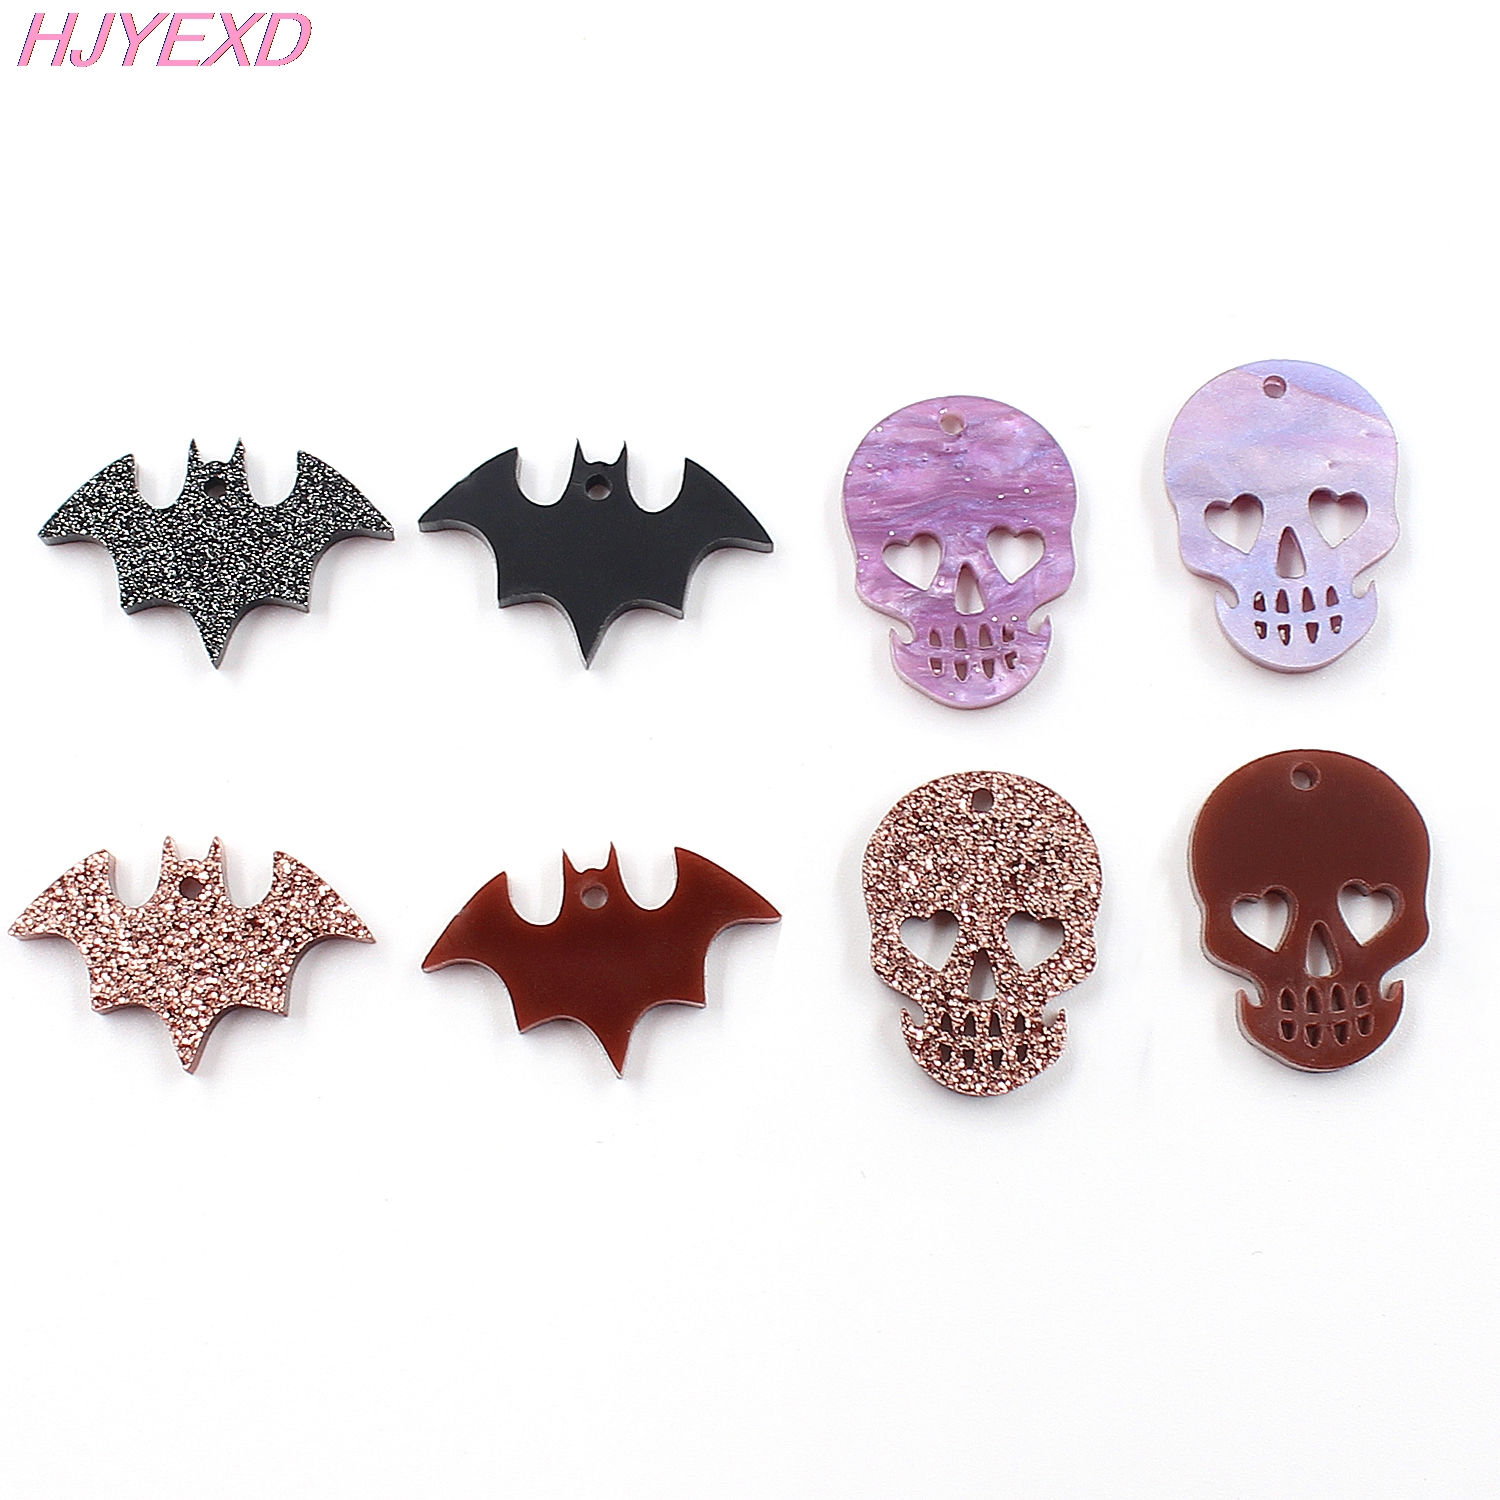 (10pcs /lot) 1 inches Acrylic Texas For Earrings Laser Cut Glitter Taxes Jewelry Accessories